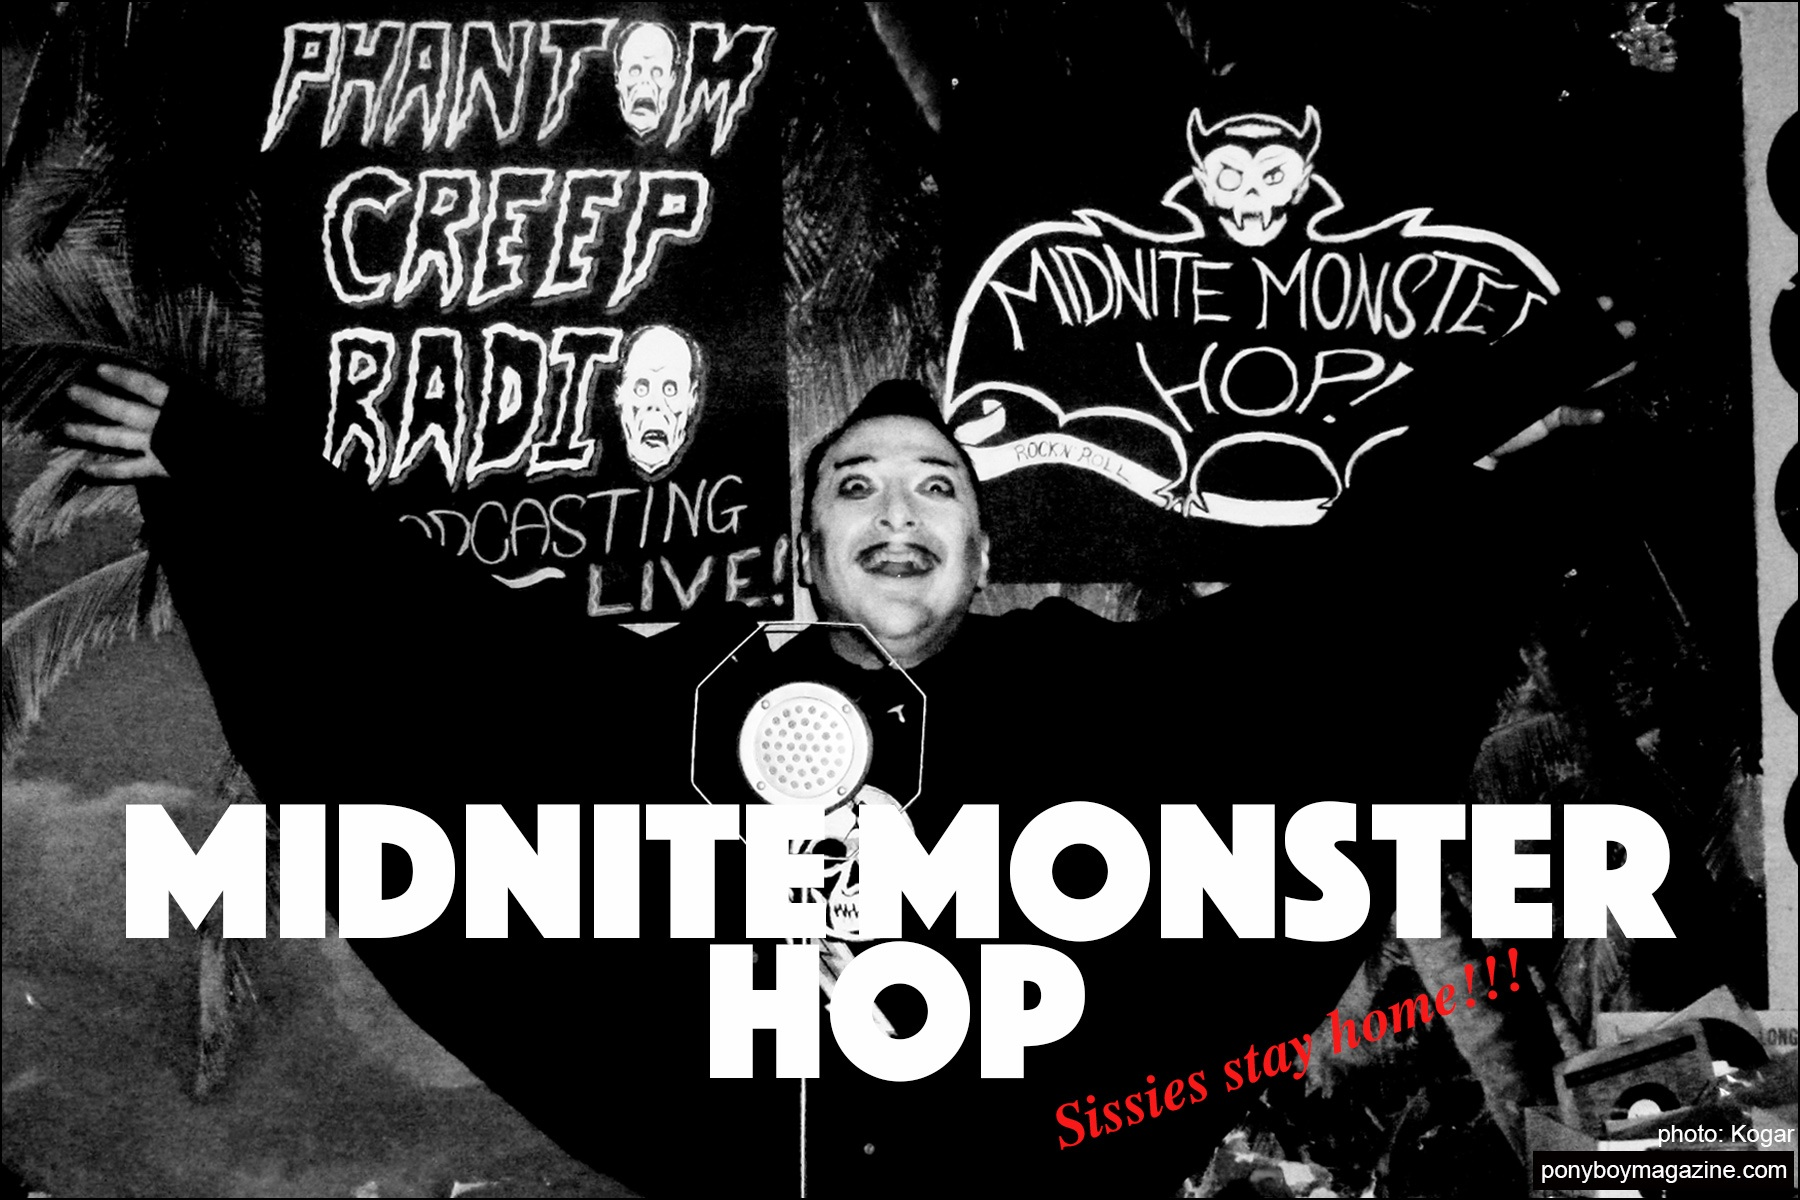 The Midnite Monster Hop party. Ponyboy magazine.